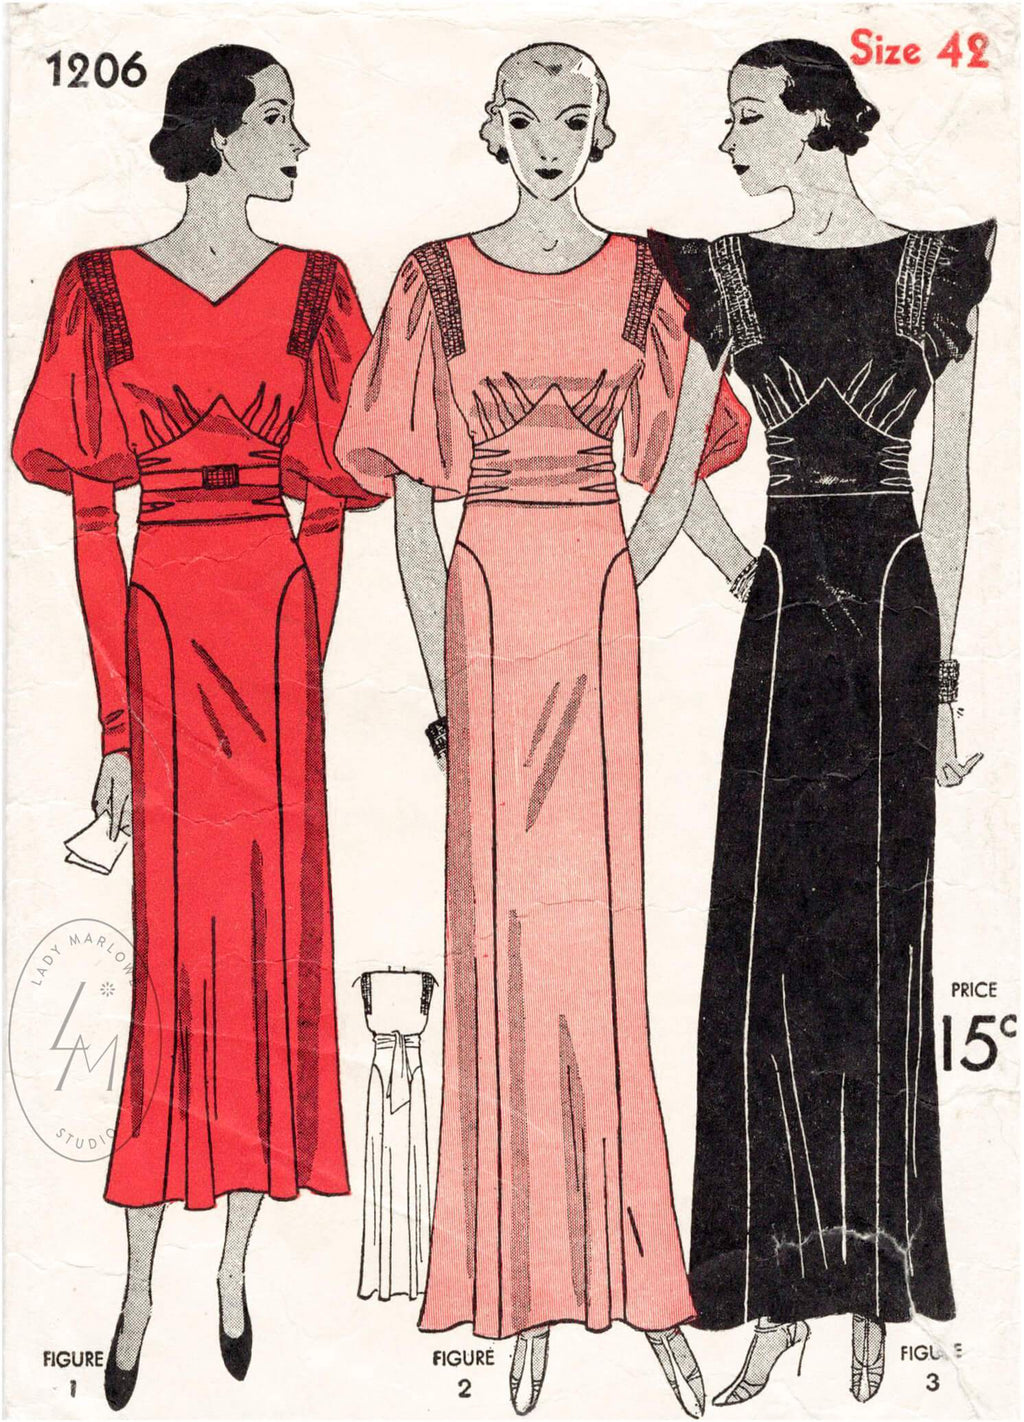 Simplicity 1206 1930s vintage sewing pattern 1930 30s dress evening gown